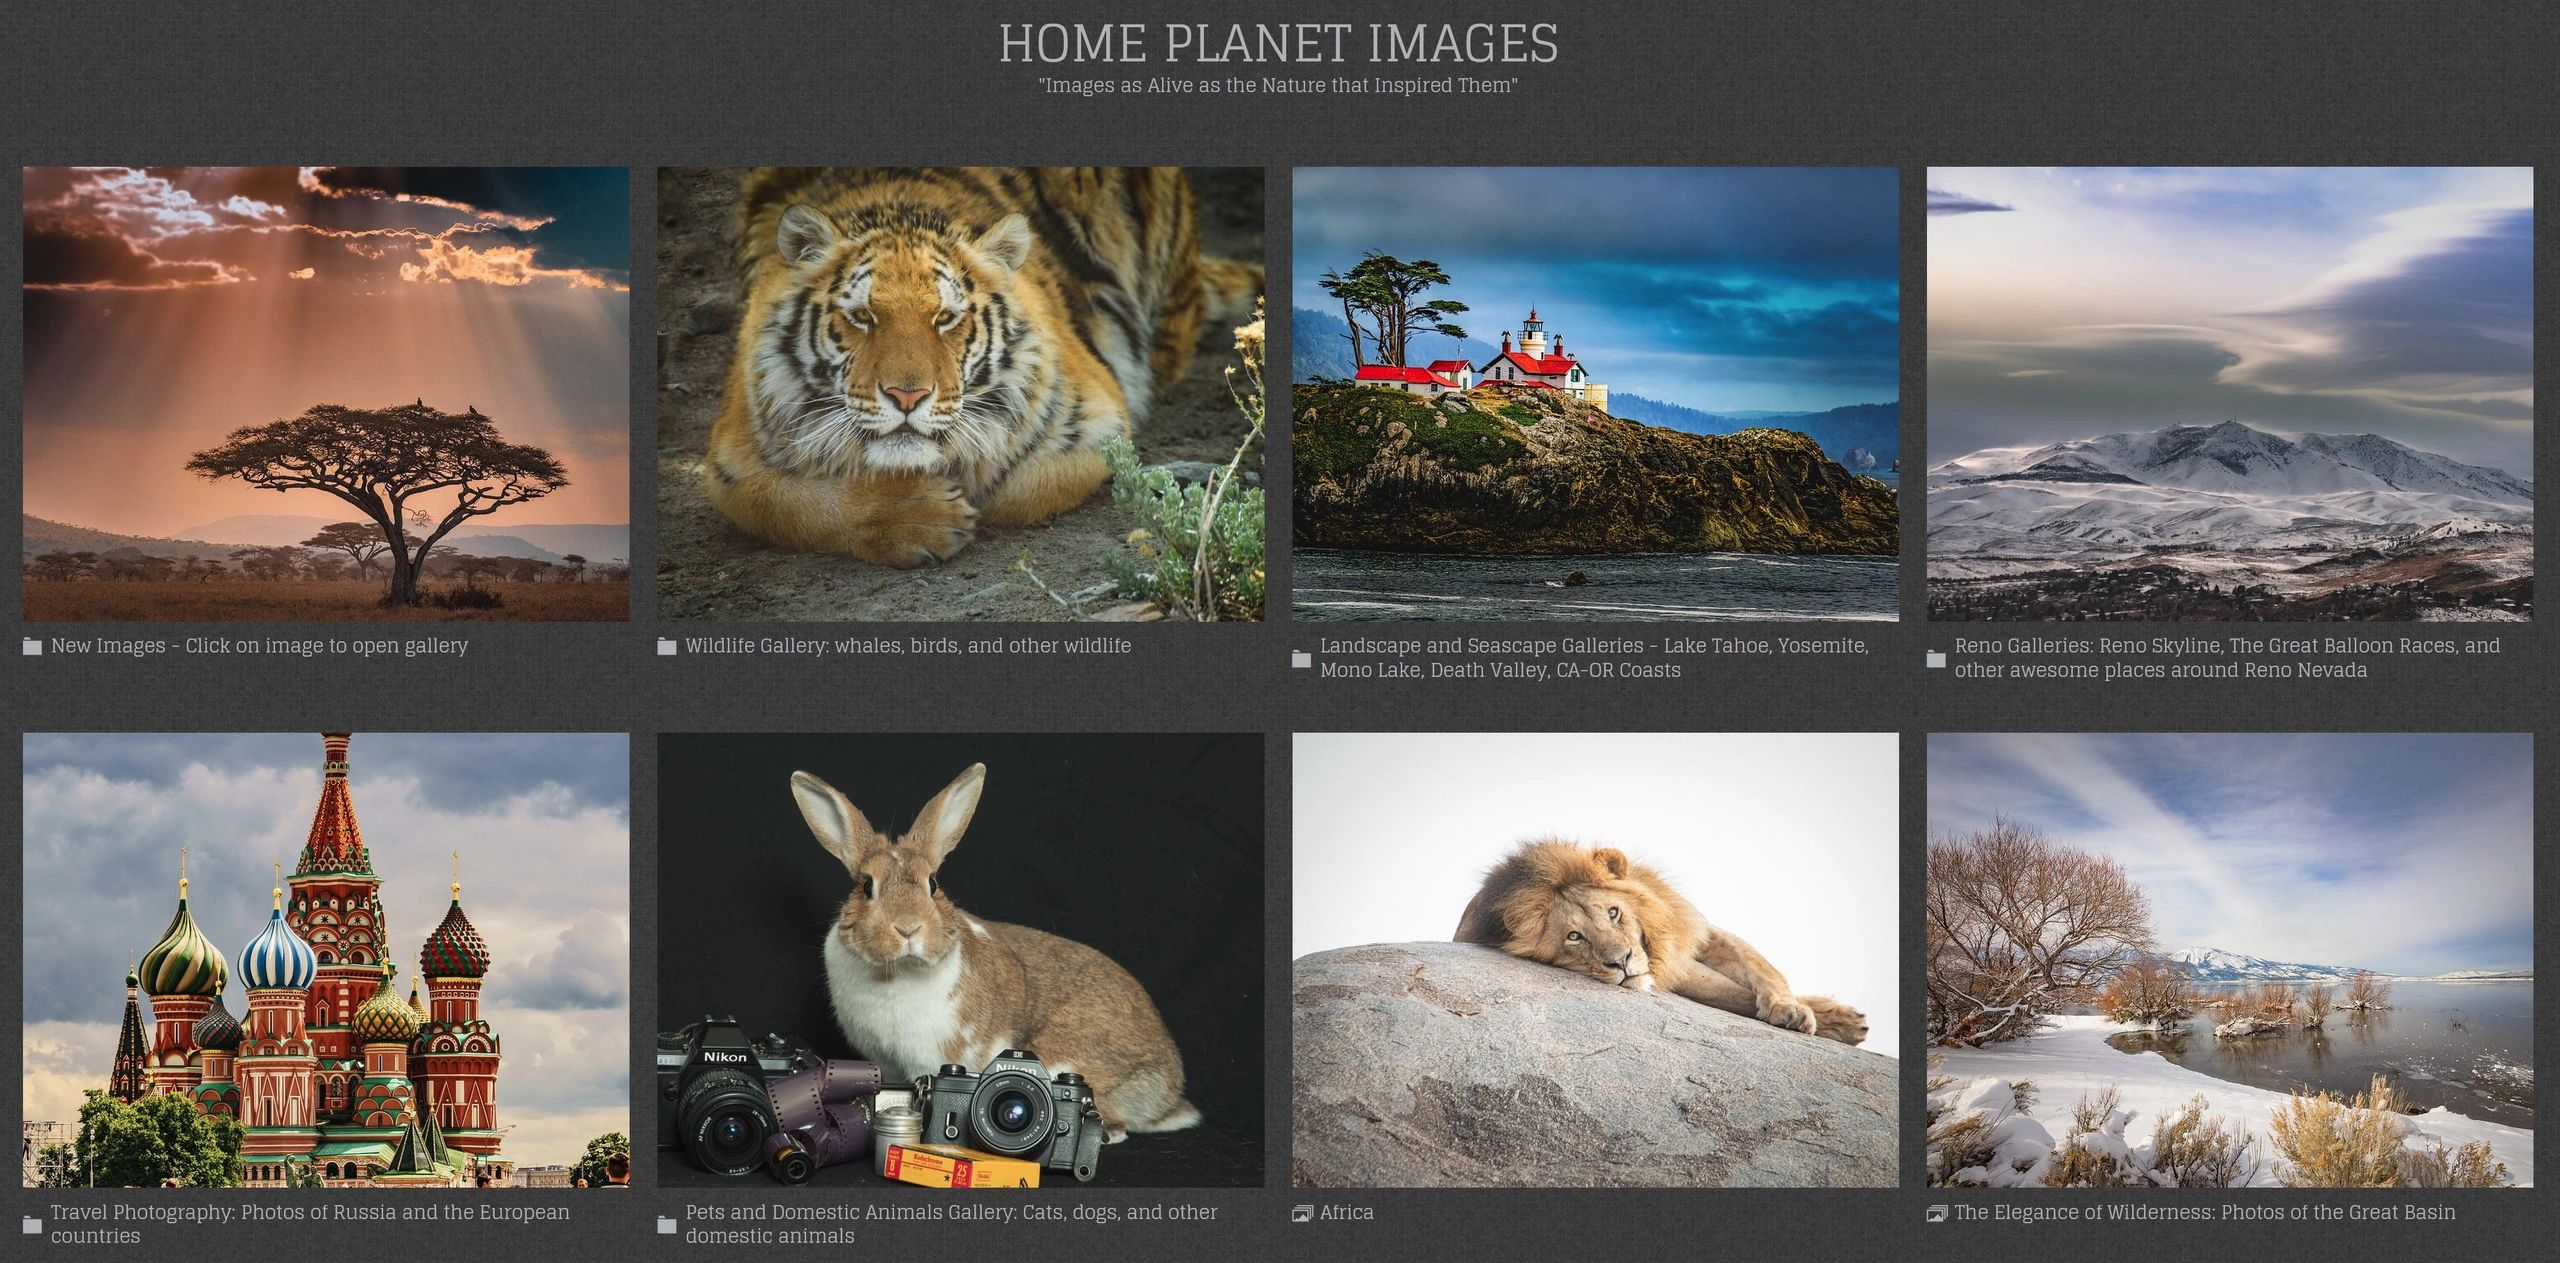 "{""blocks"":[{""key"":""6g629"",""text"":""The Smugmug page where you can order prints on paper, acrylic, or metal.  https://homeplanetimages.smugmug.com/"",""type"":""unstyled"",""depth"":0,""inlineStyleRanges"":[],""entityRanges"":[],""data"":{}},{""key"":""asv5q"",""text"":"""",""type"":""unstyled"",""depth"":0,""inlineStyleRanges"":[],""entityRanges"":[],""data"":{}}],""entityMap"":{}}"